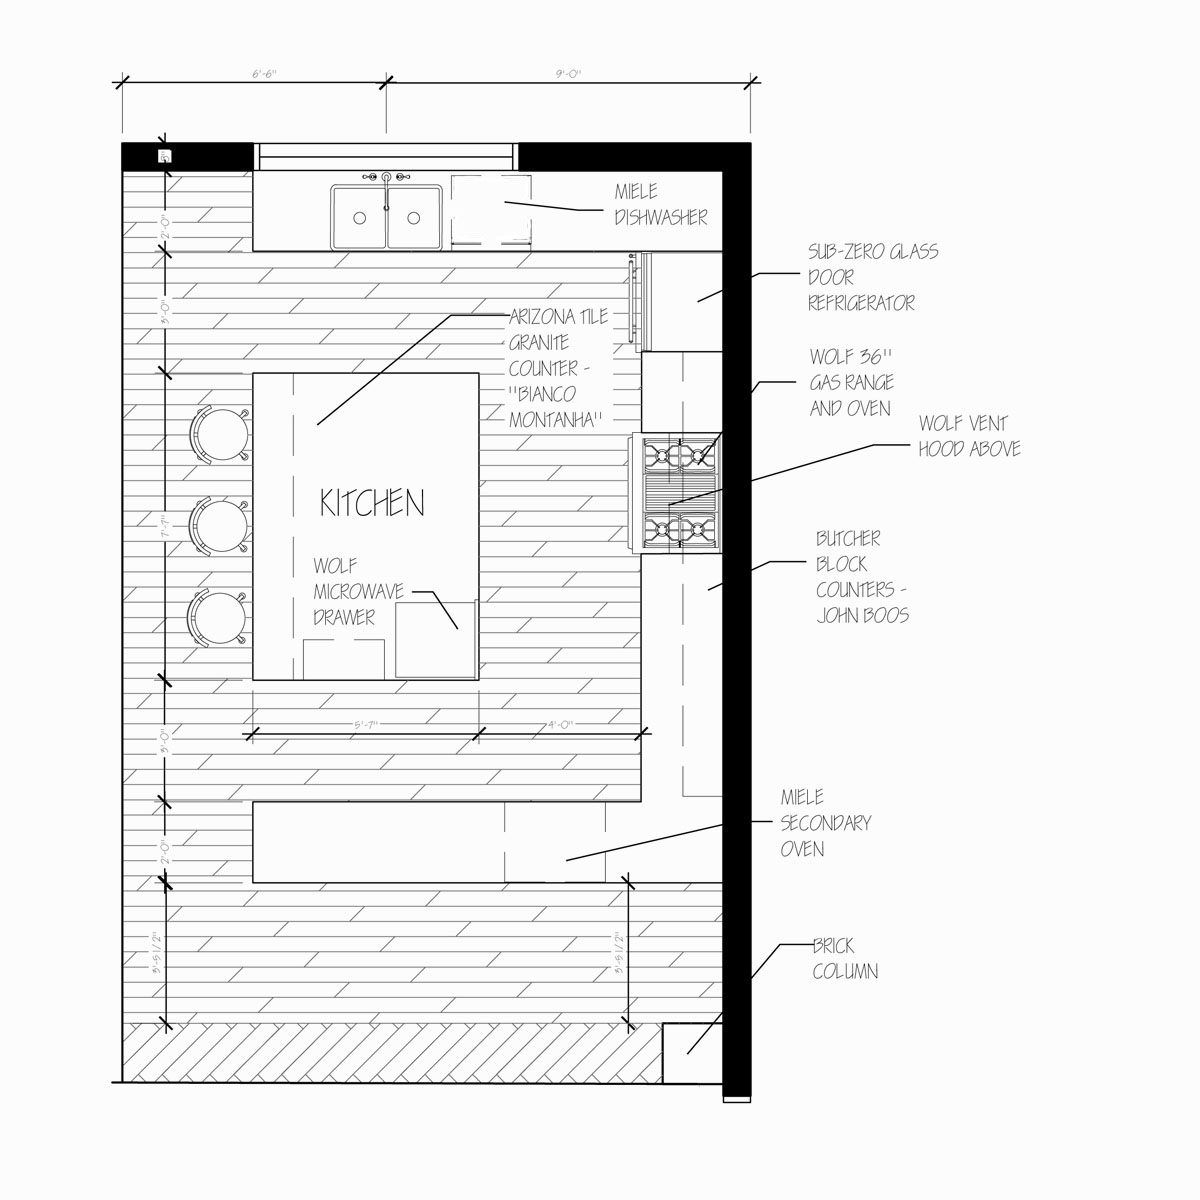 Autocad For Kitchen Design: 2-D Plans, Elevations, & Sections